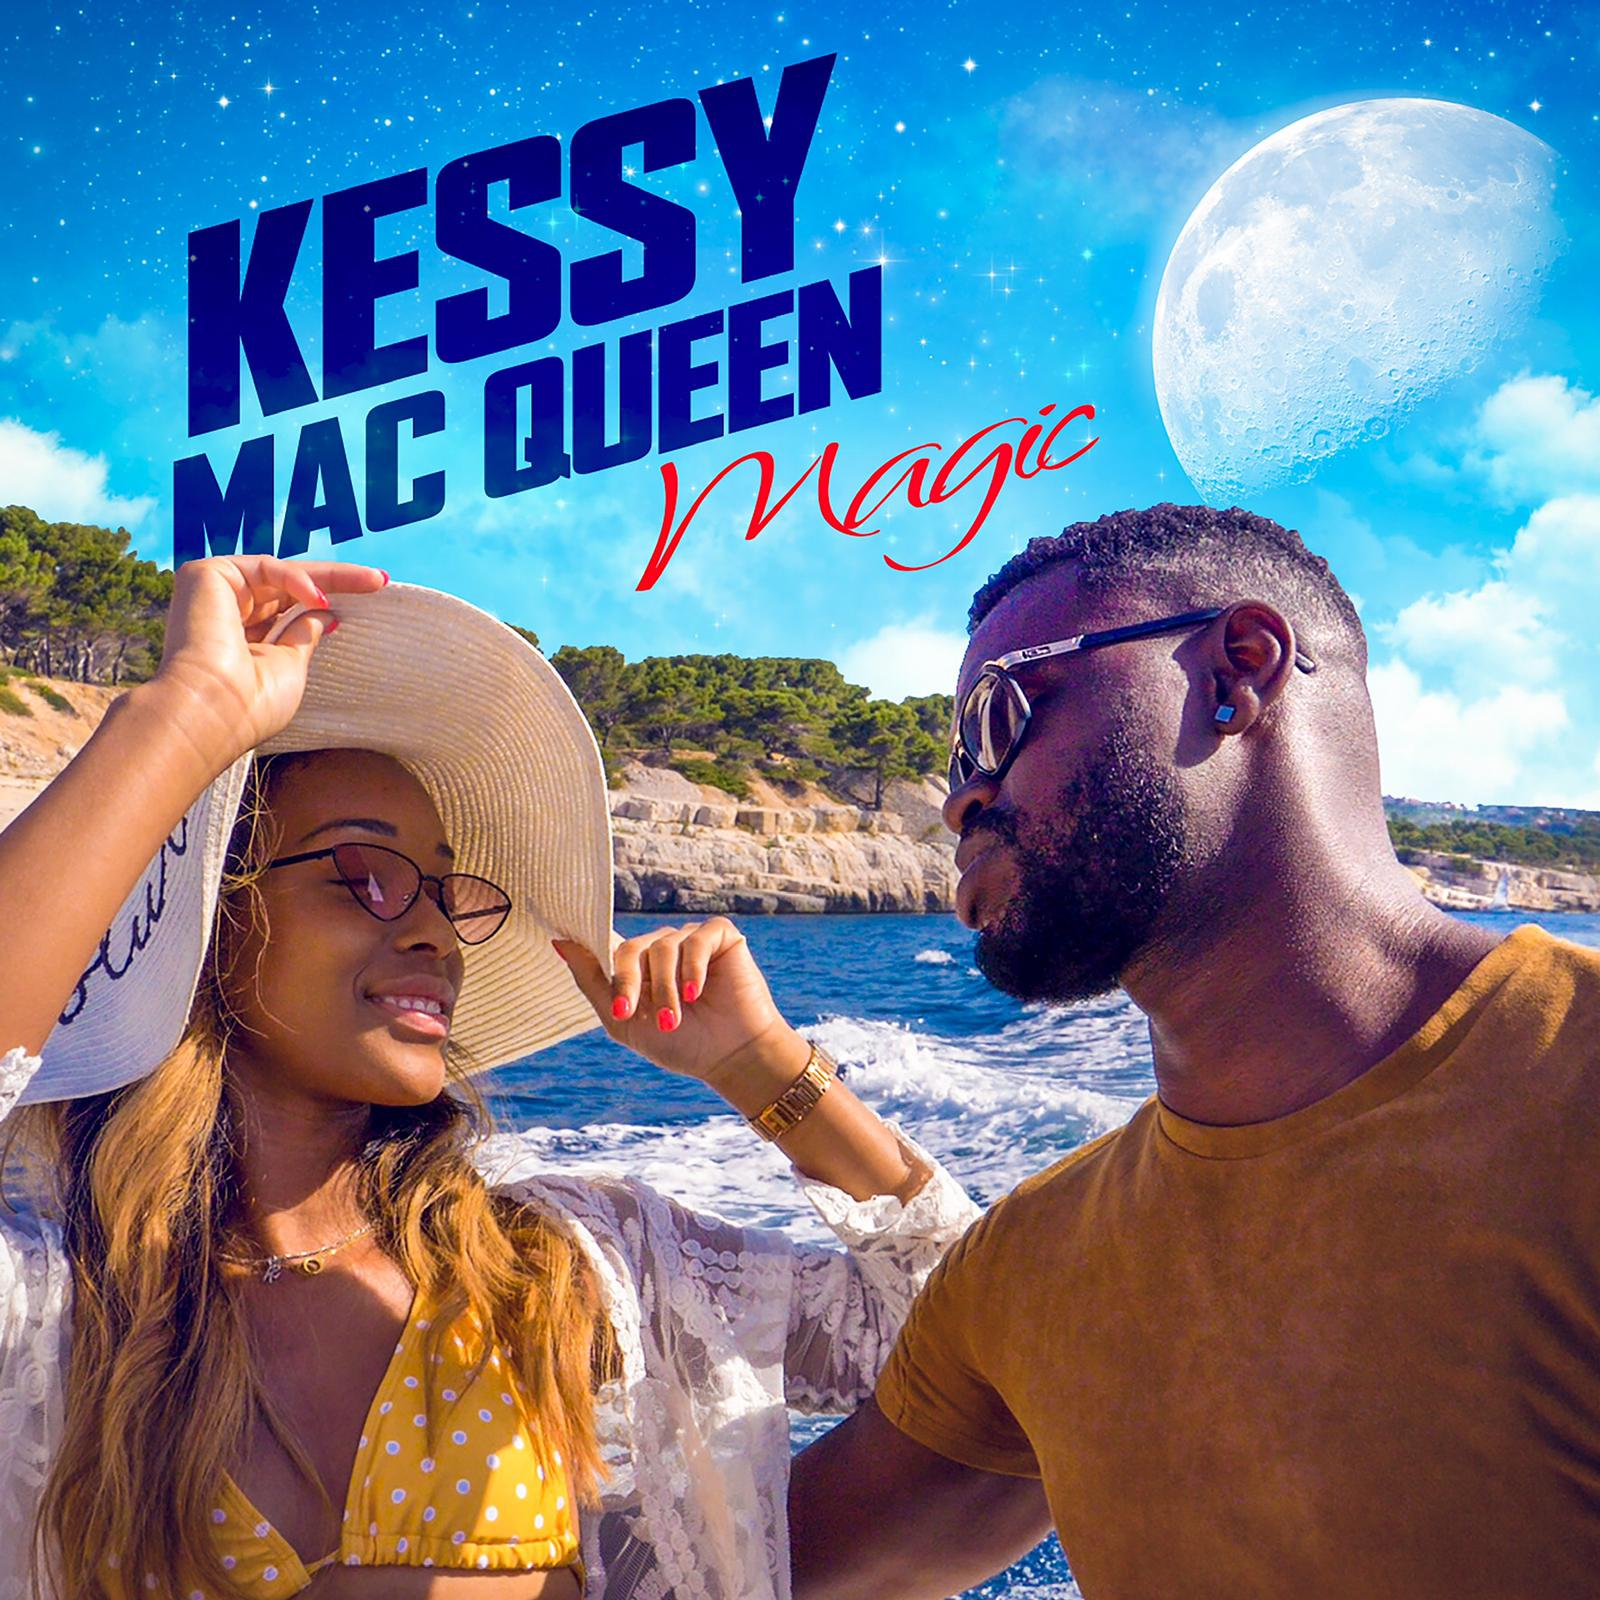 Artwork for Magic by Kessy Mac Queen. Lyrics by top lyricist and composer Arron Storey.